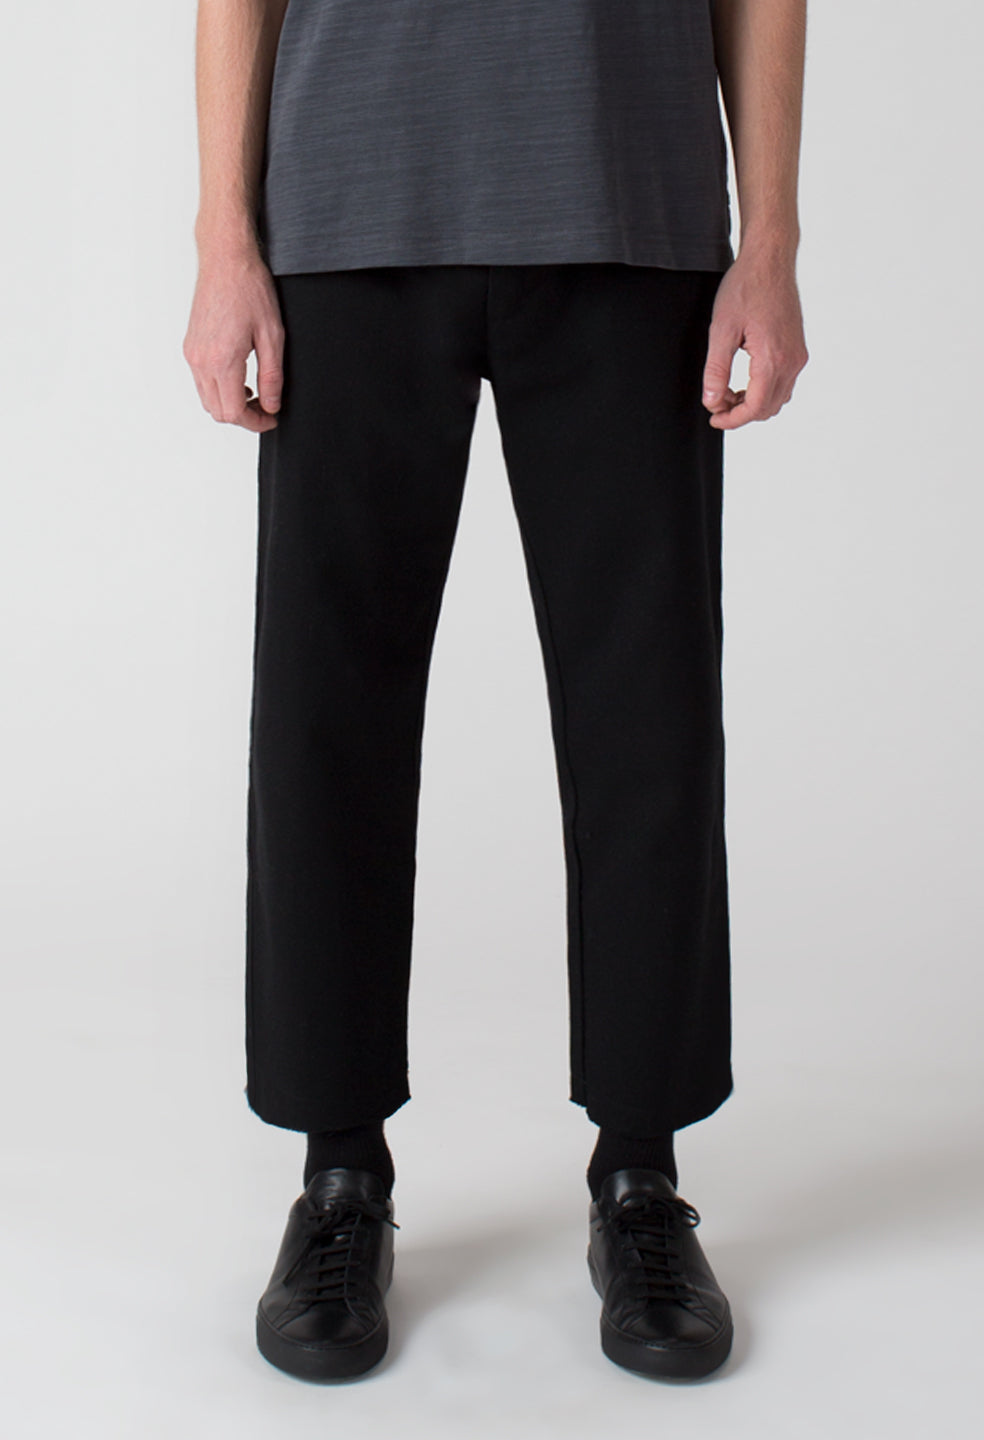 Crop Trouser - Jet Black